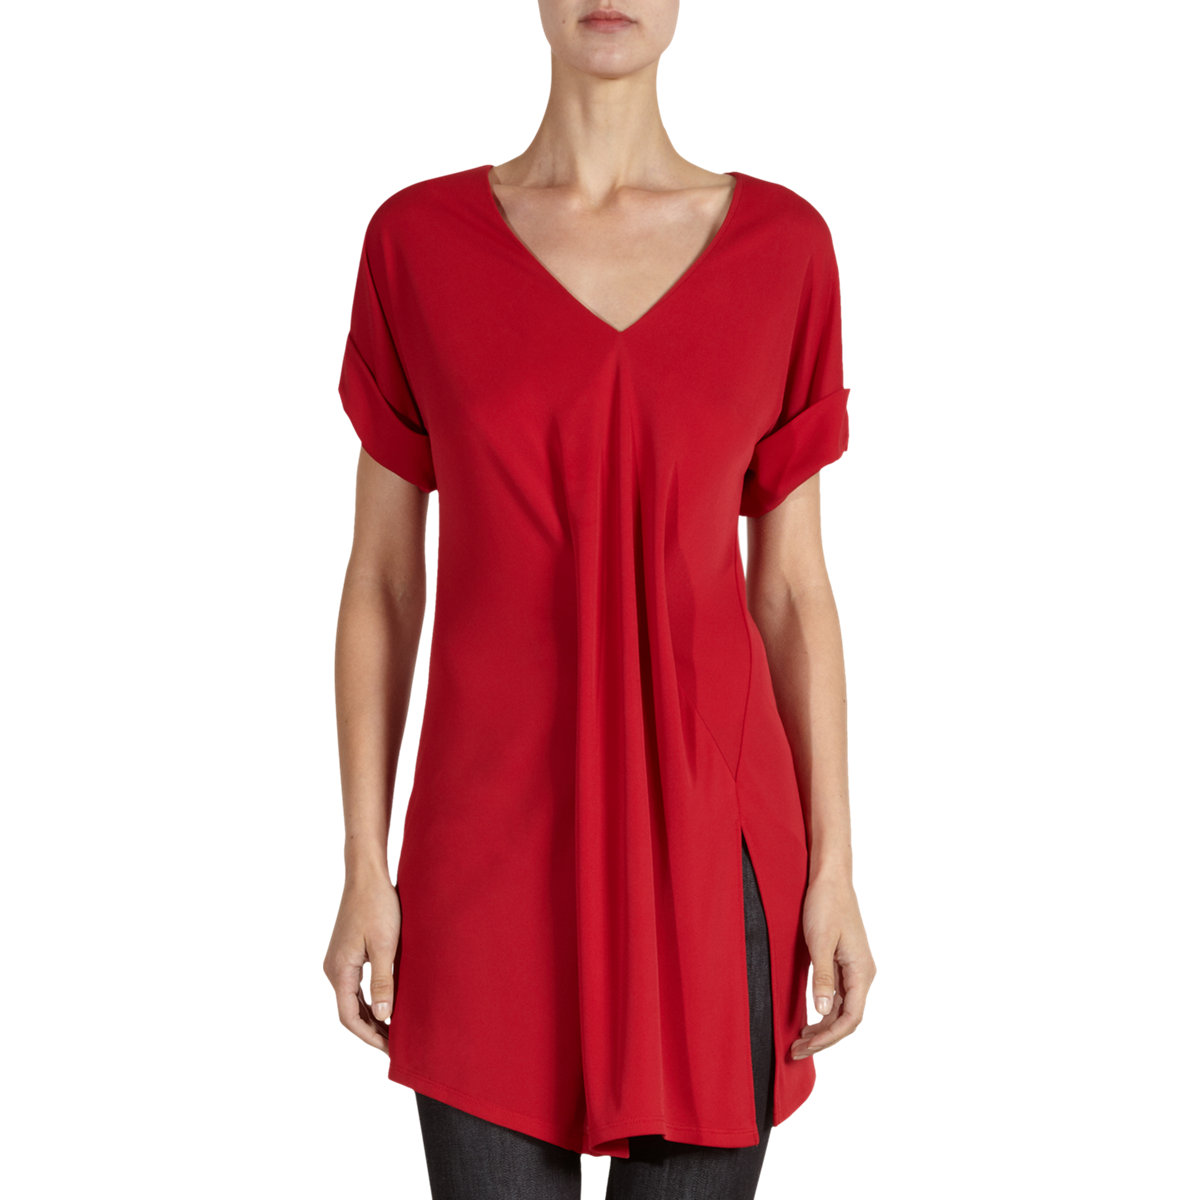 Balenciaga Suspended Tunic Top In Red Lyst